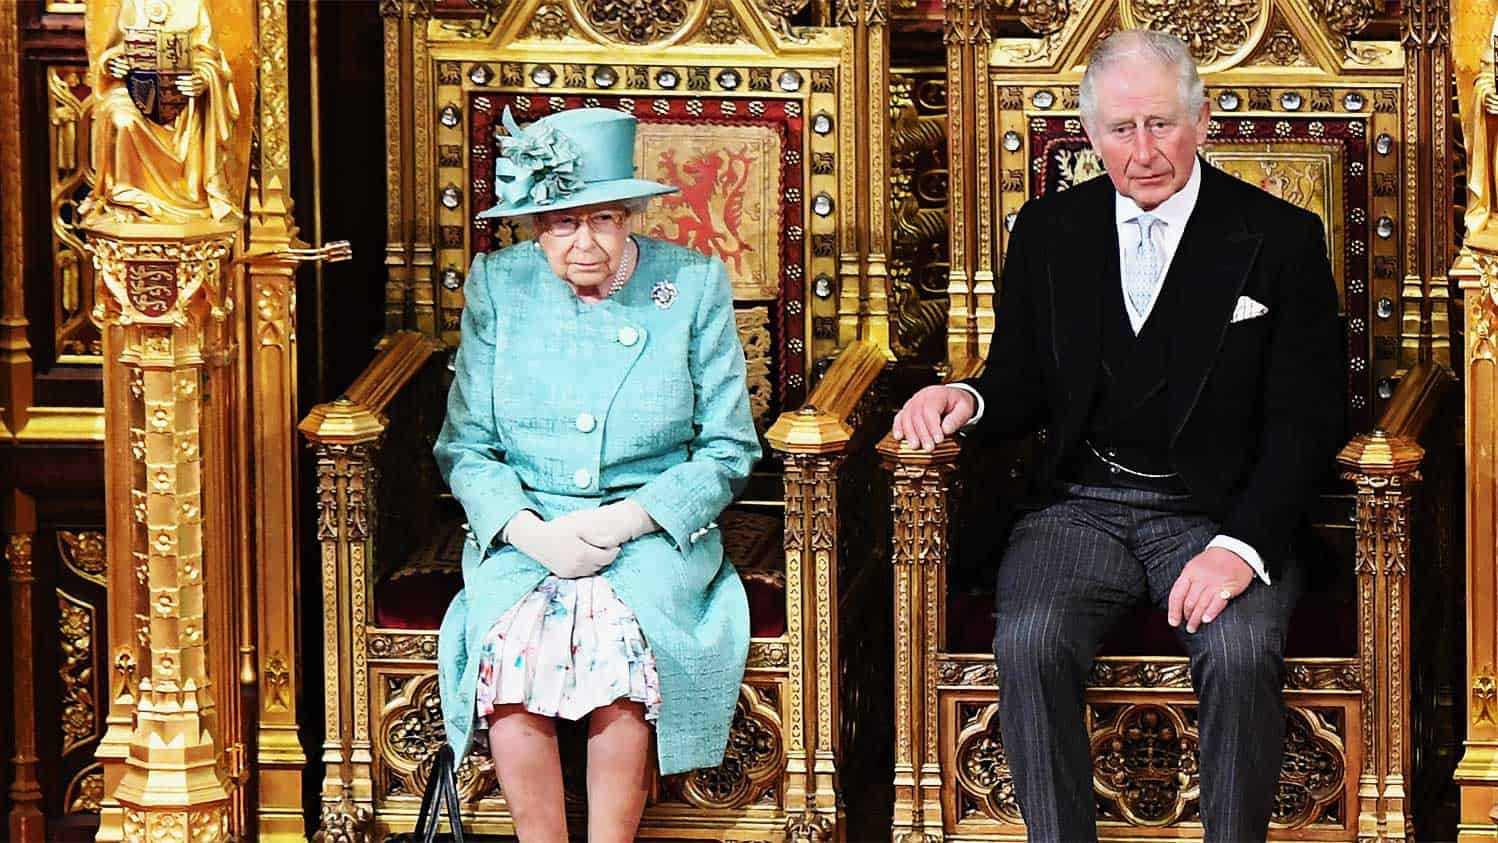 Queen and Prince Charles on the throne